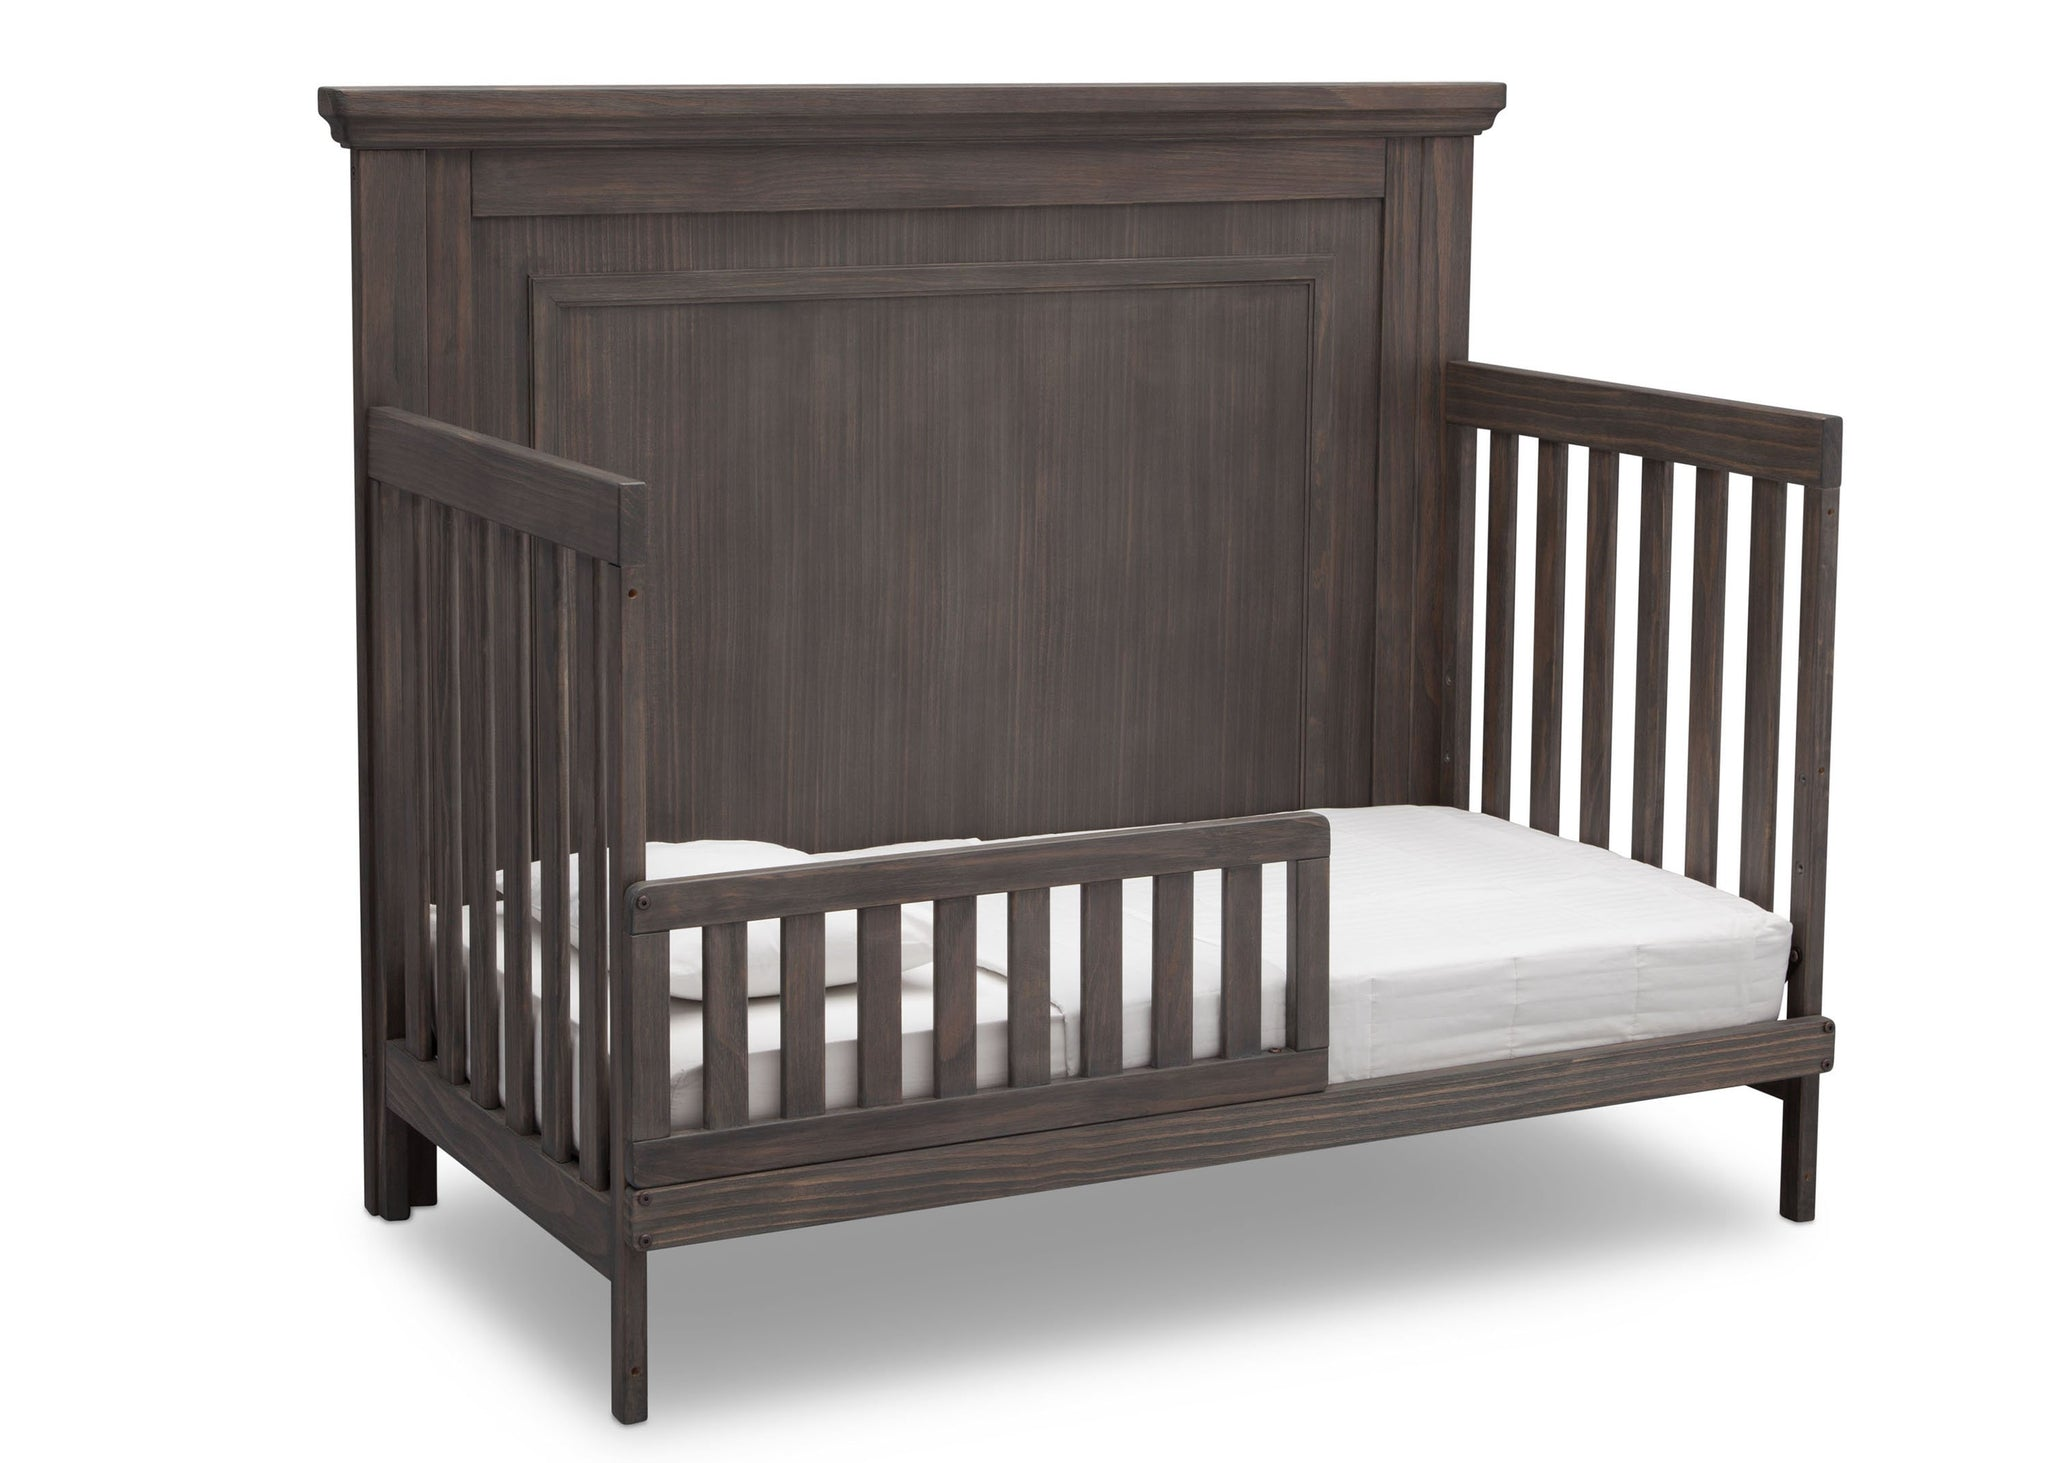 Simmons Rustic Grey (084) Paloma 4-in-1 Convertible Crib (328150), Silo Toddler Bed, a4a